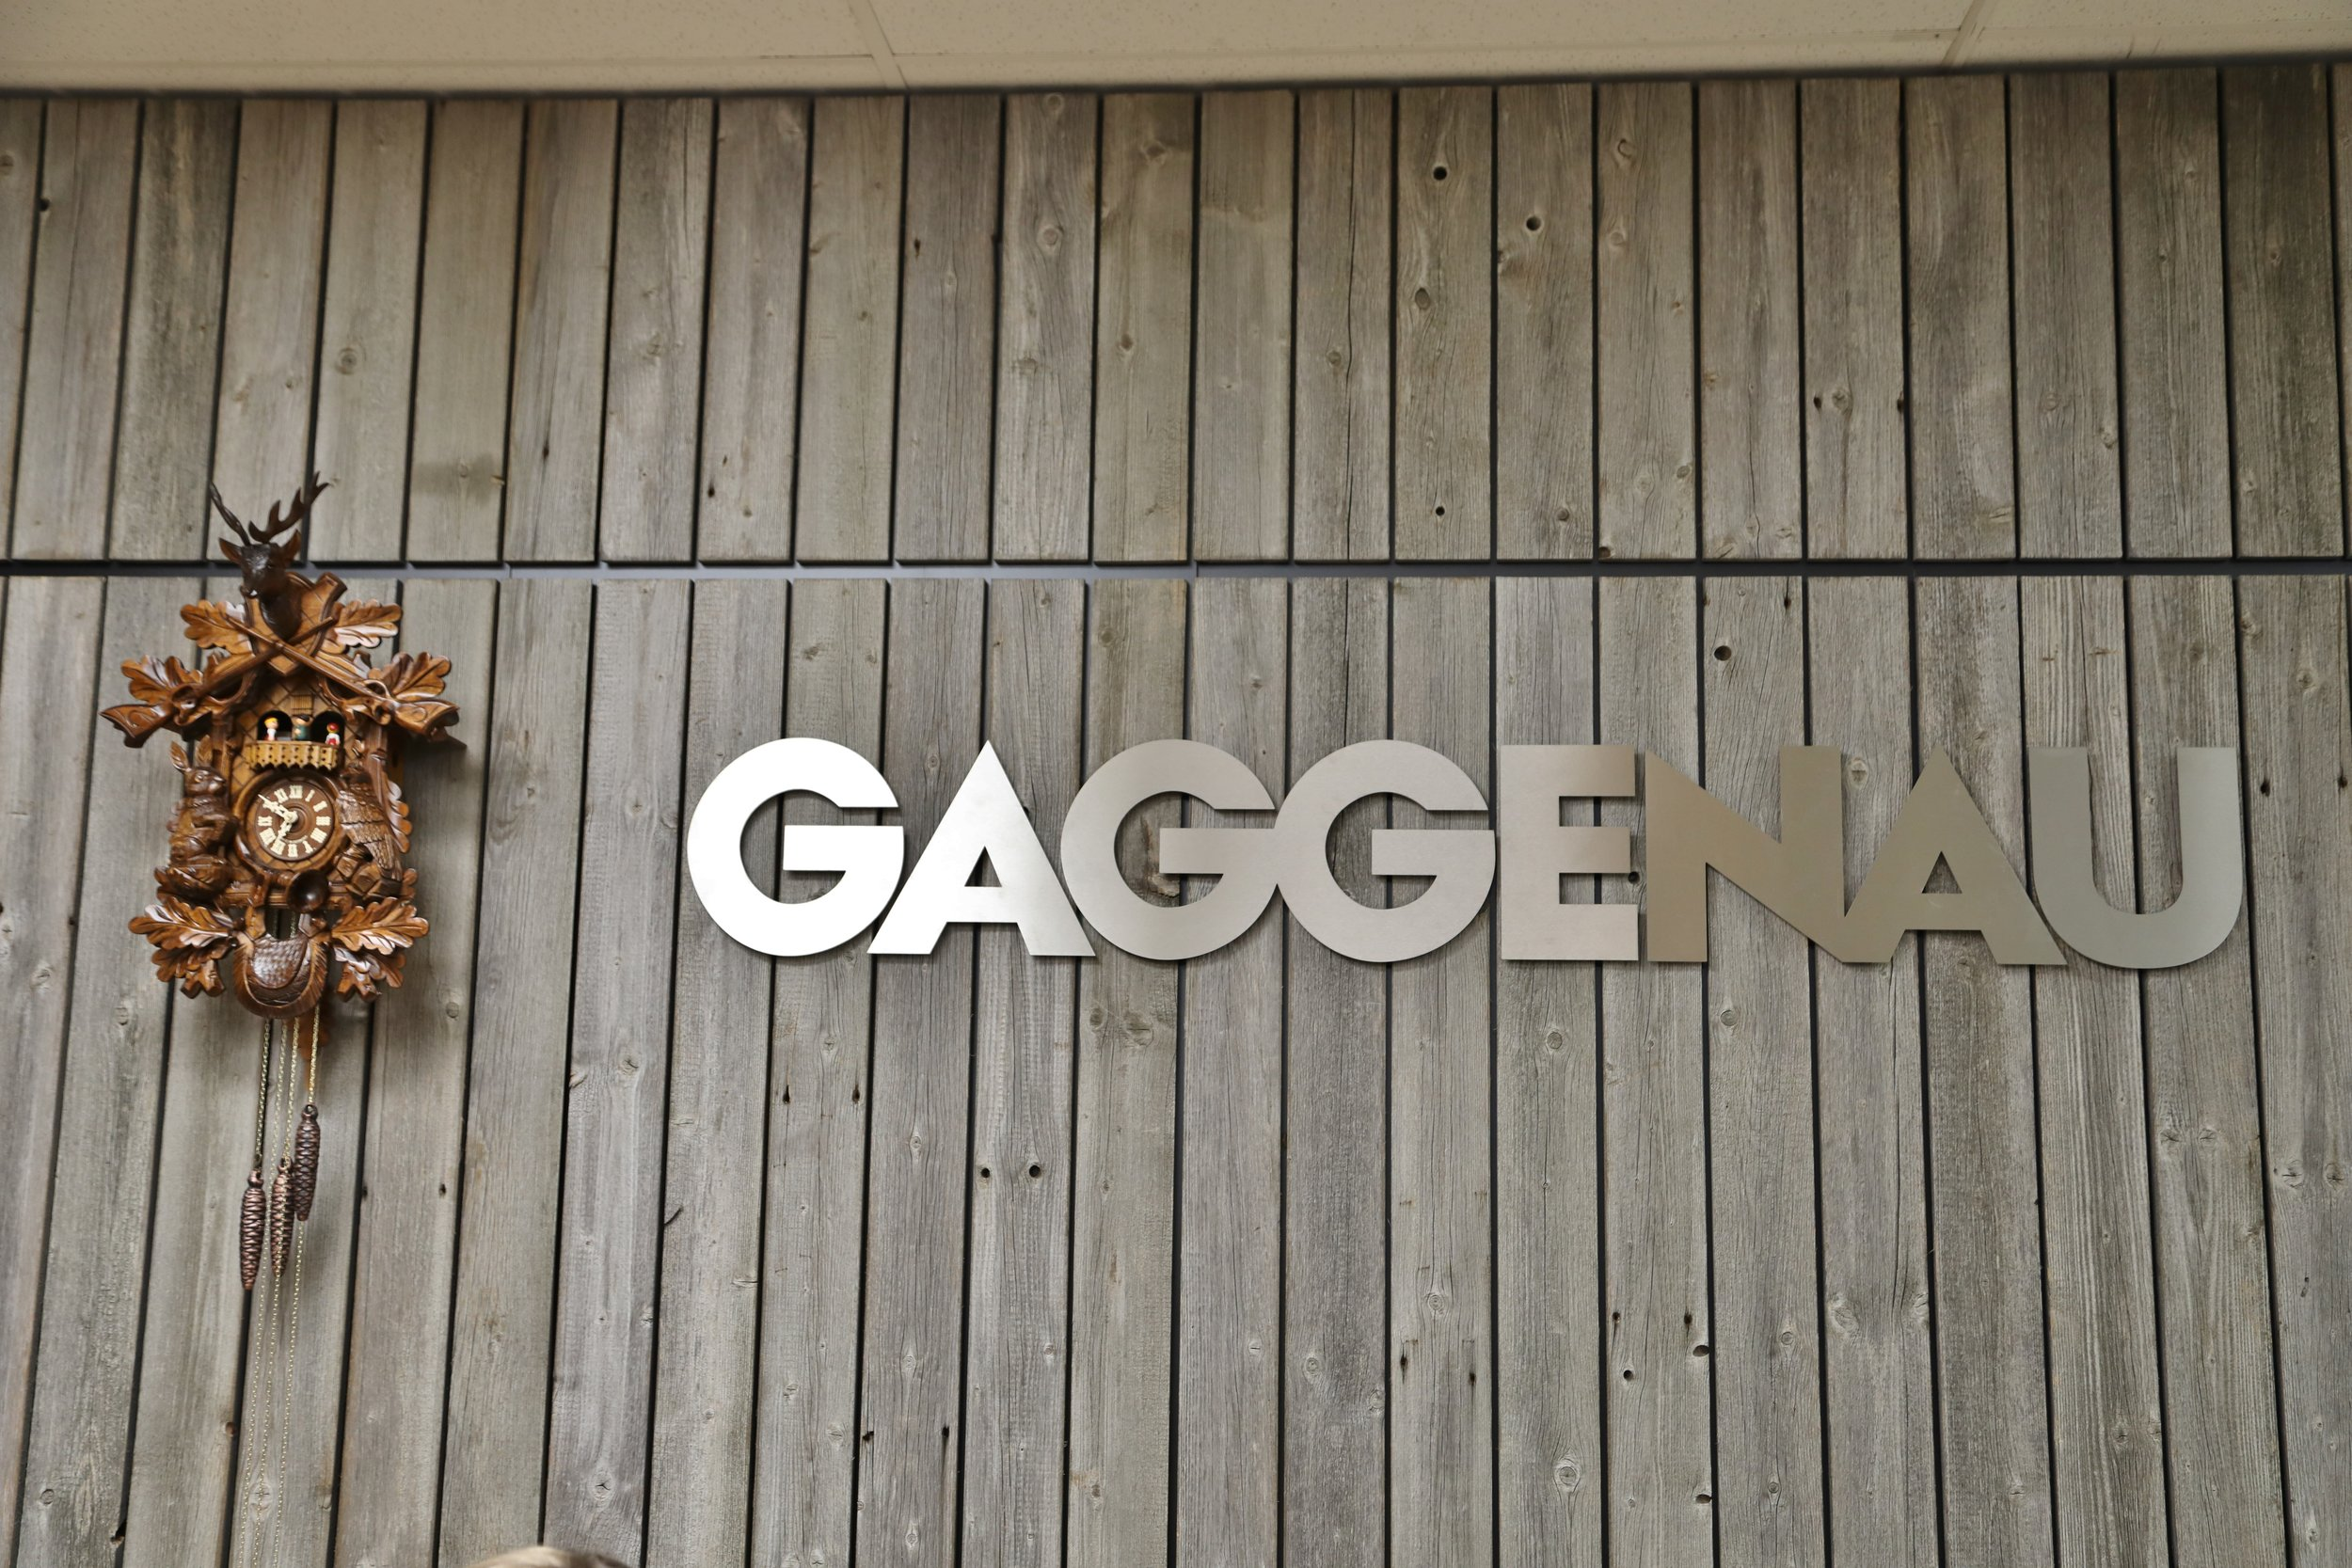 The Gaggenau line can be seen at the newest AUTCOHome at 1694 Larkin Williams Road in Fenton, MO.*